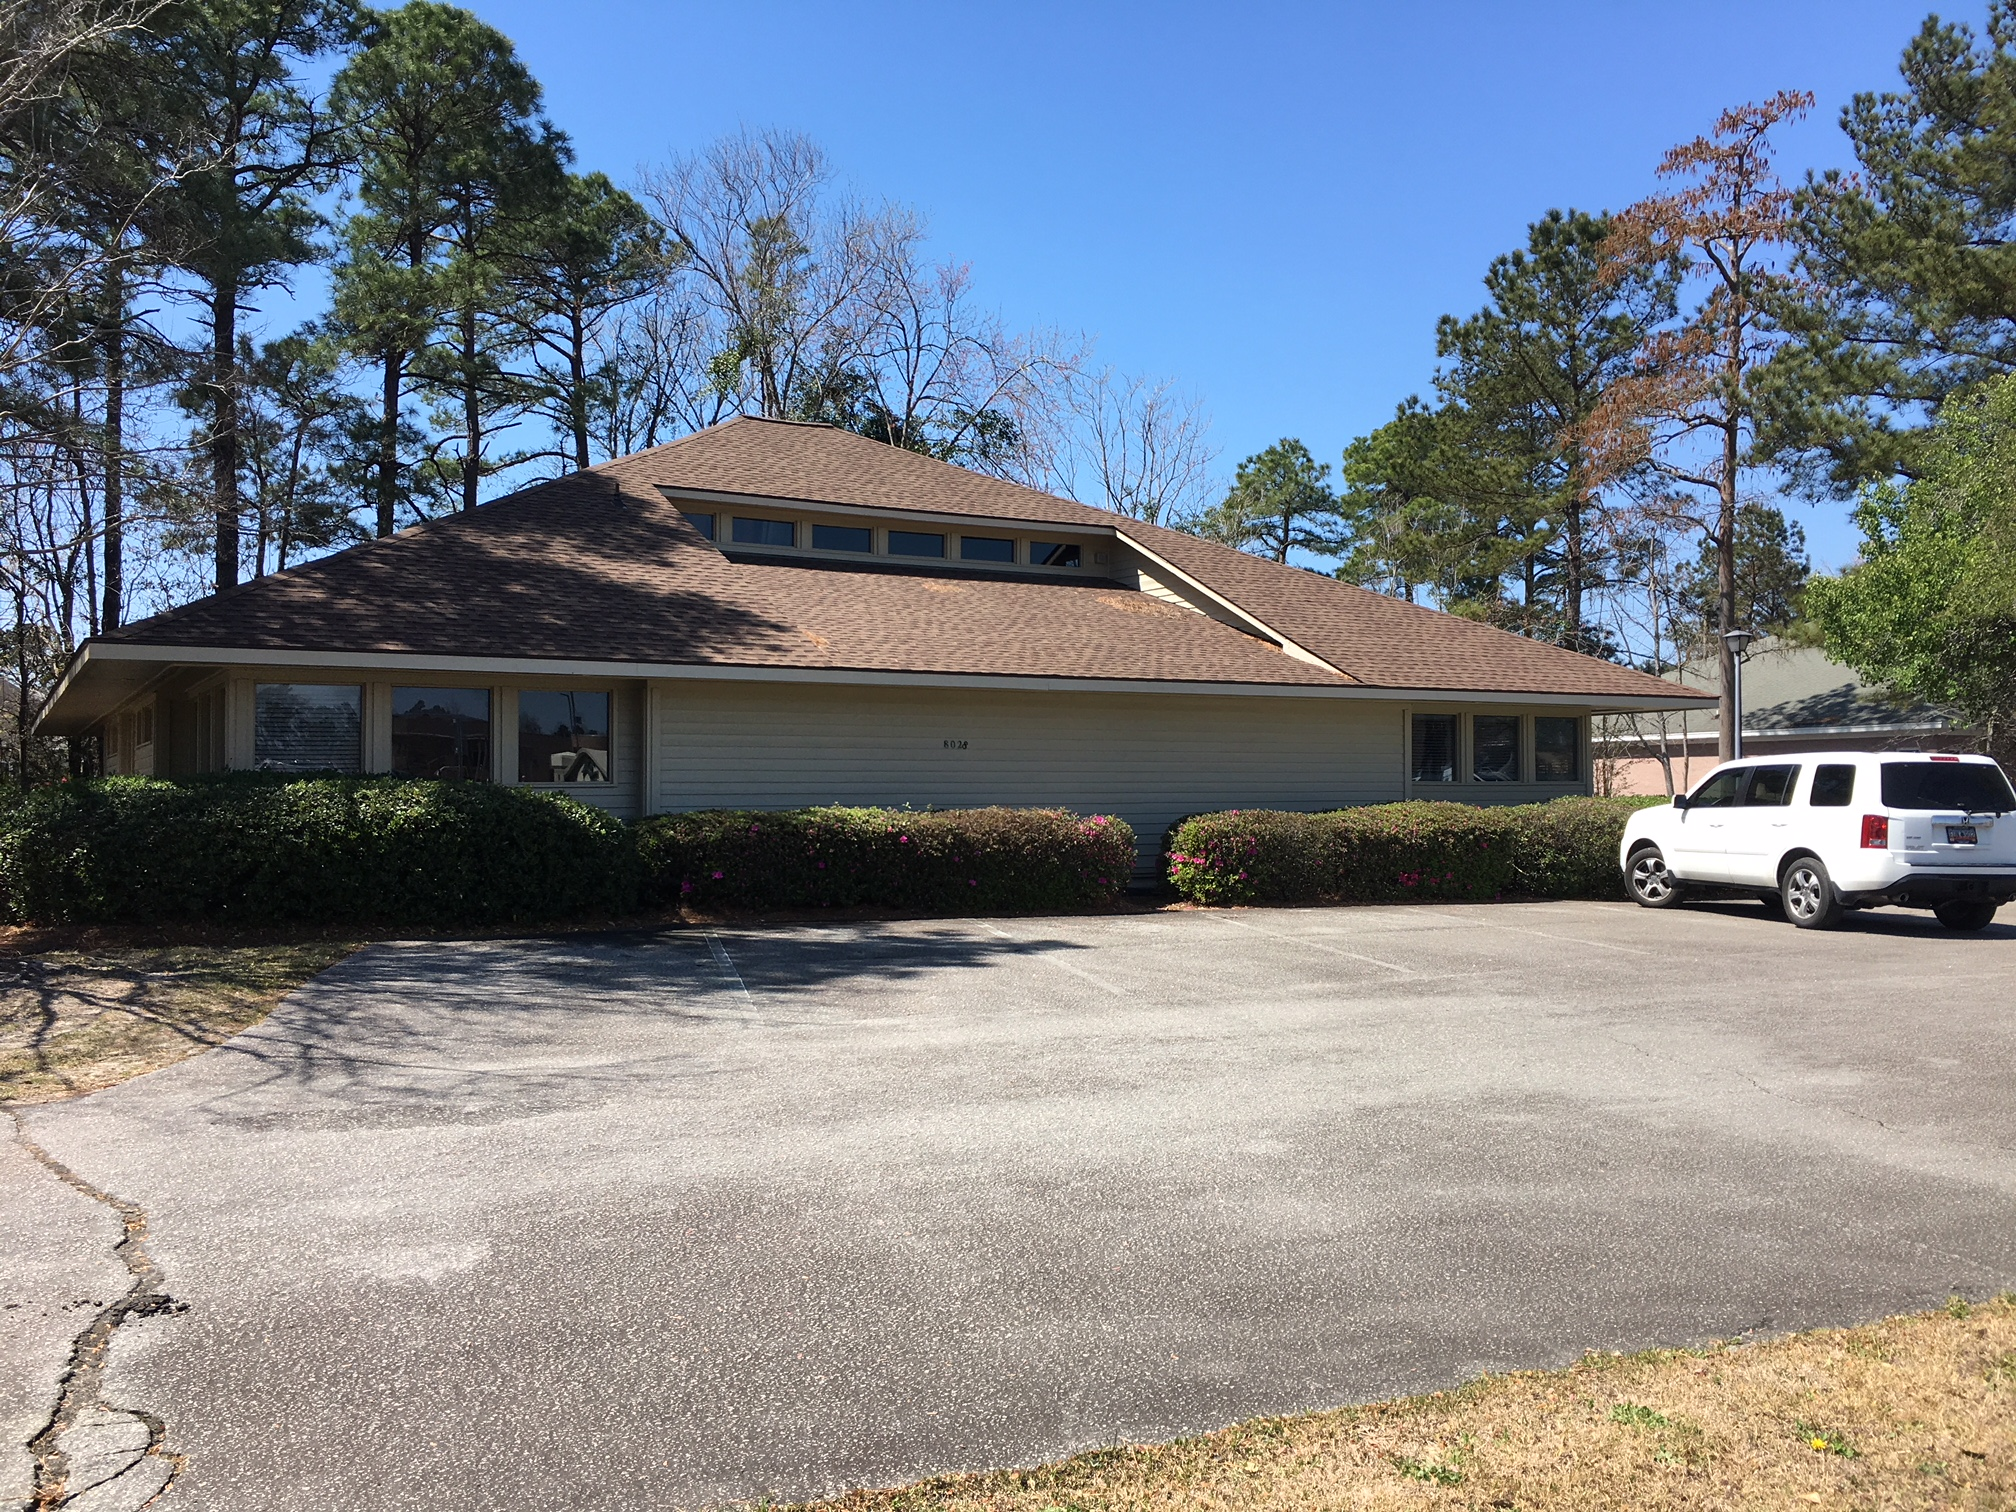 8028 Myrtle Trace Drive,Conway,South Carolina,29526,Office / Medical,Former Atlantic Eye,Myrtle Trace Drive,1436